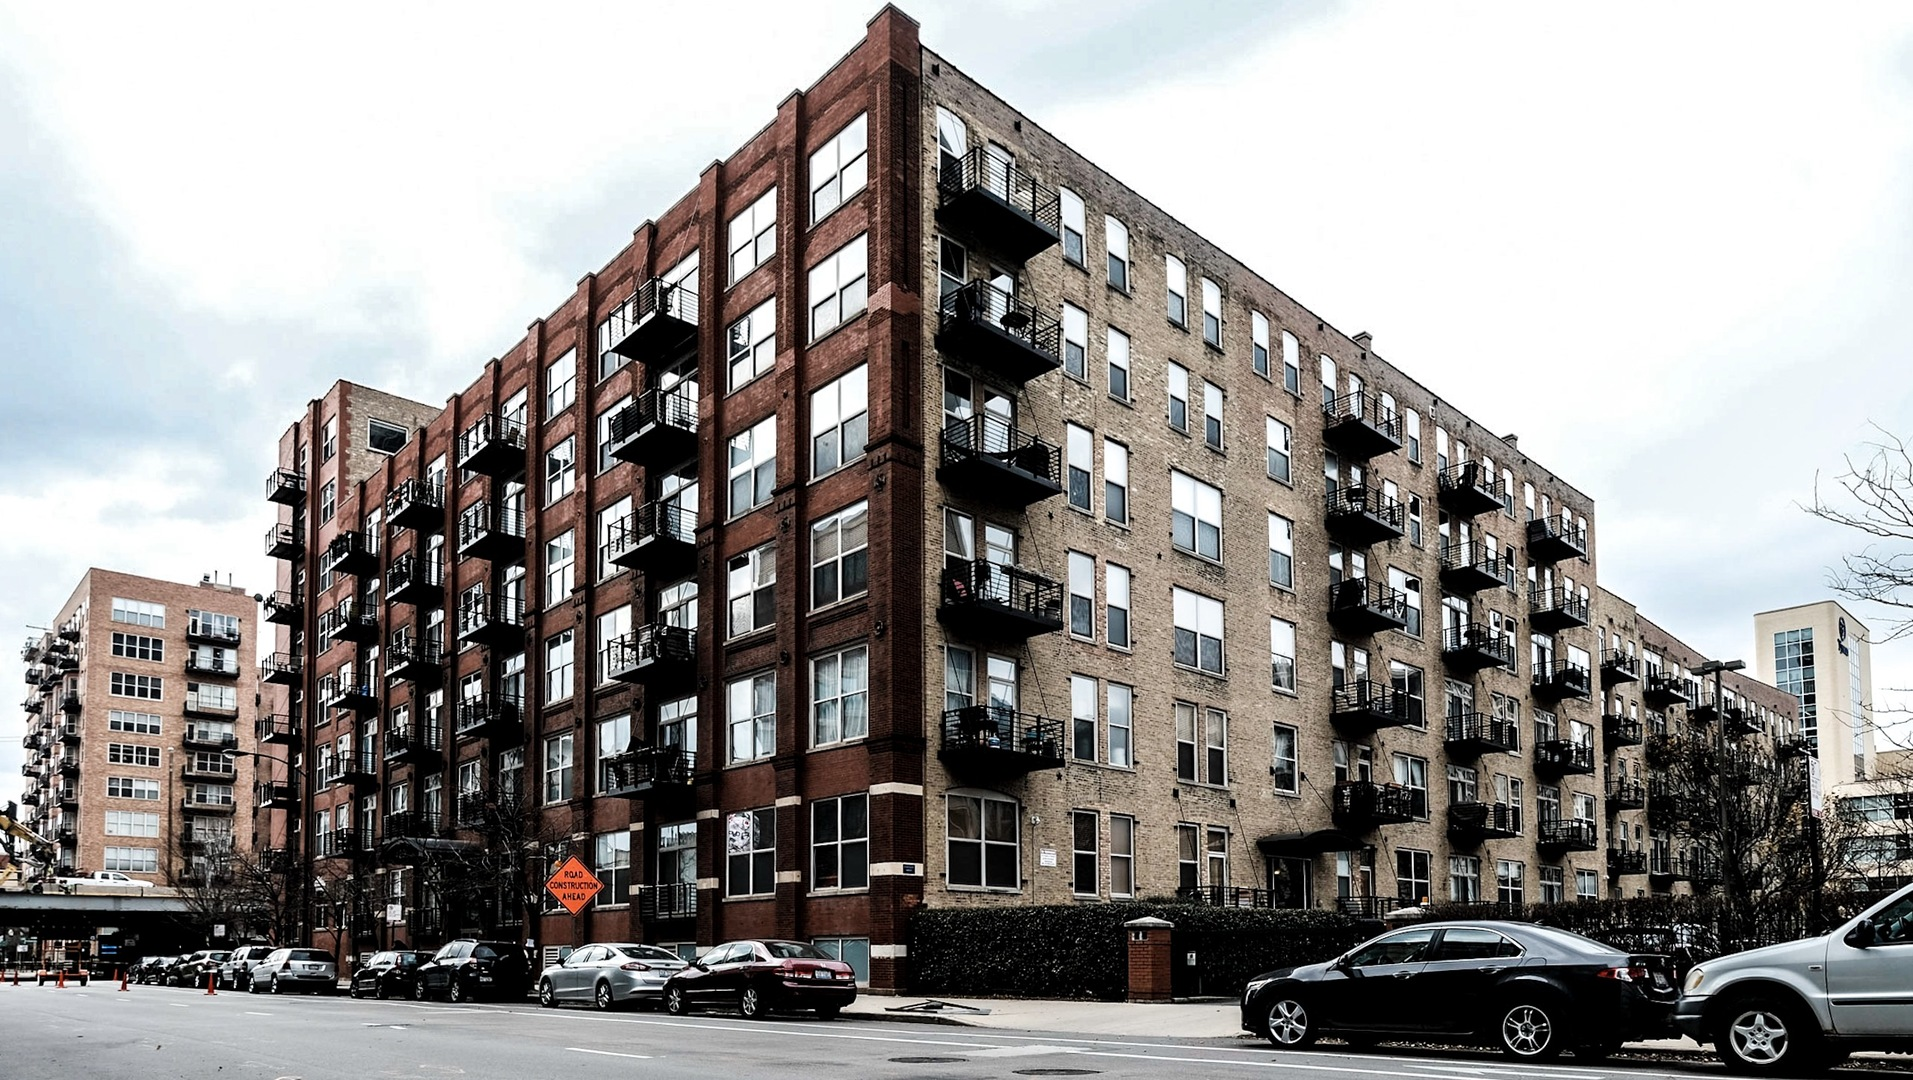 420 SOUTH CLINTON STREET #114A, CHICAGO, IL 60607